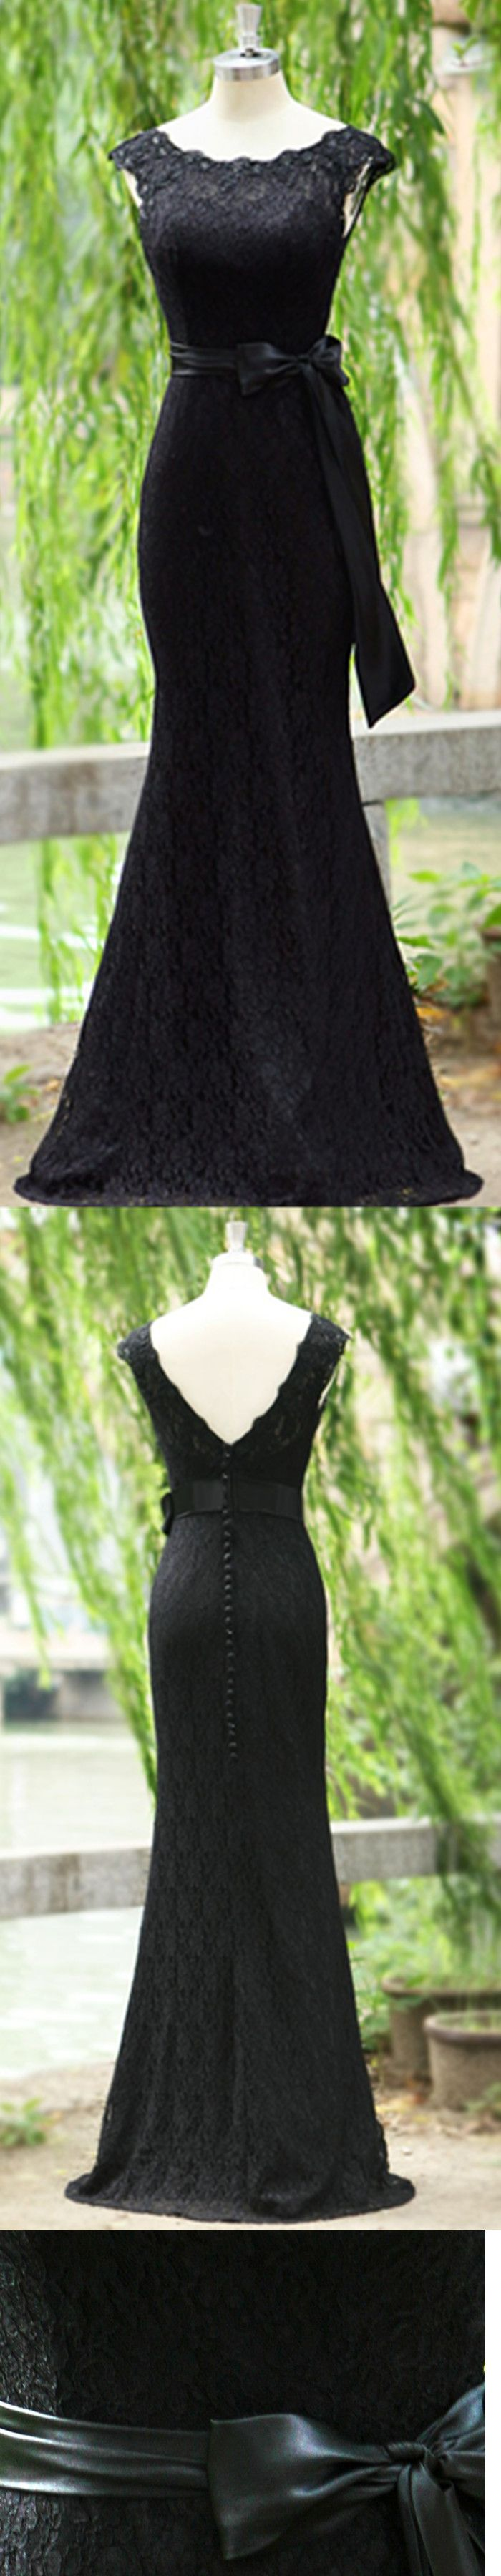 Diyouth.com Exquisite Mermaid Black Lace Evening Dress Scoop Neckline Ribbon Backless Floor-length Evening Gowns, long prom dresses, Mother of the Bride Dresses, Lace cocktail dress,Off the Shoulder evening dress, lace wedding dress,Trumpet / Mermaid prom dress,